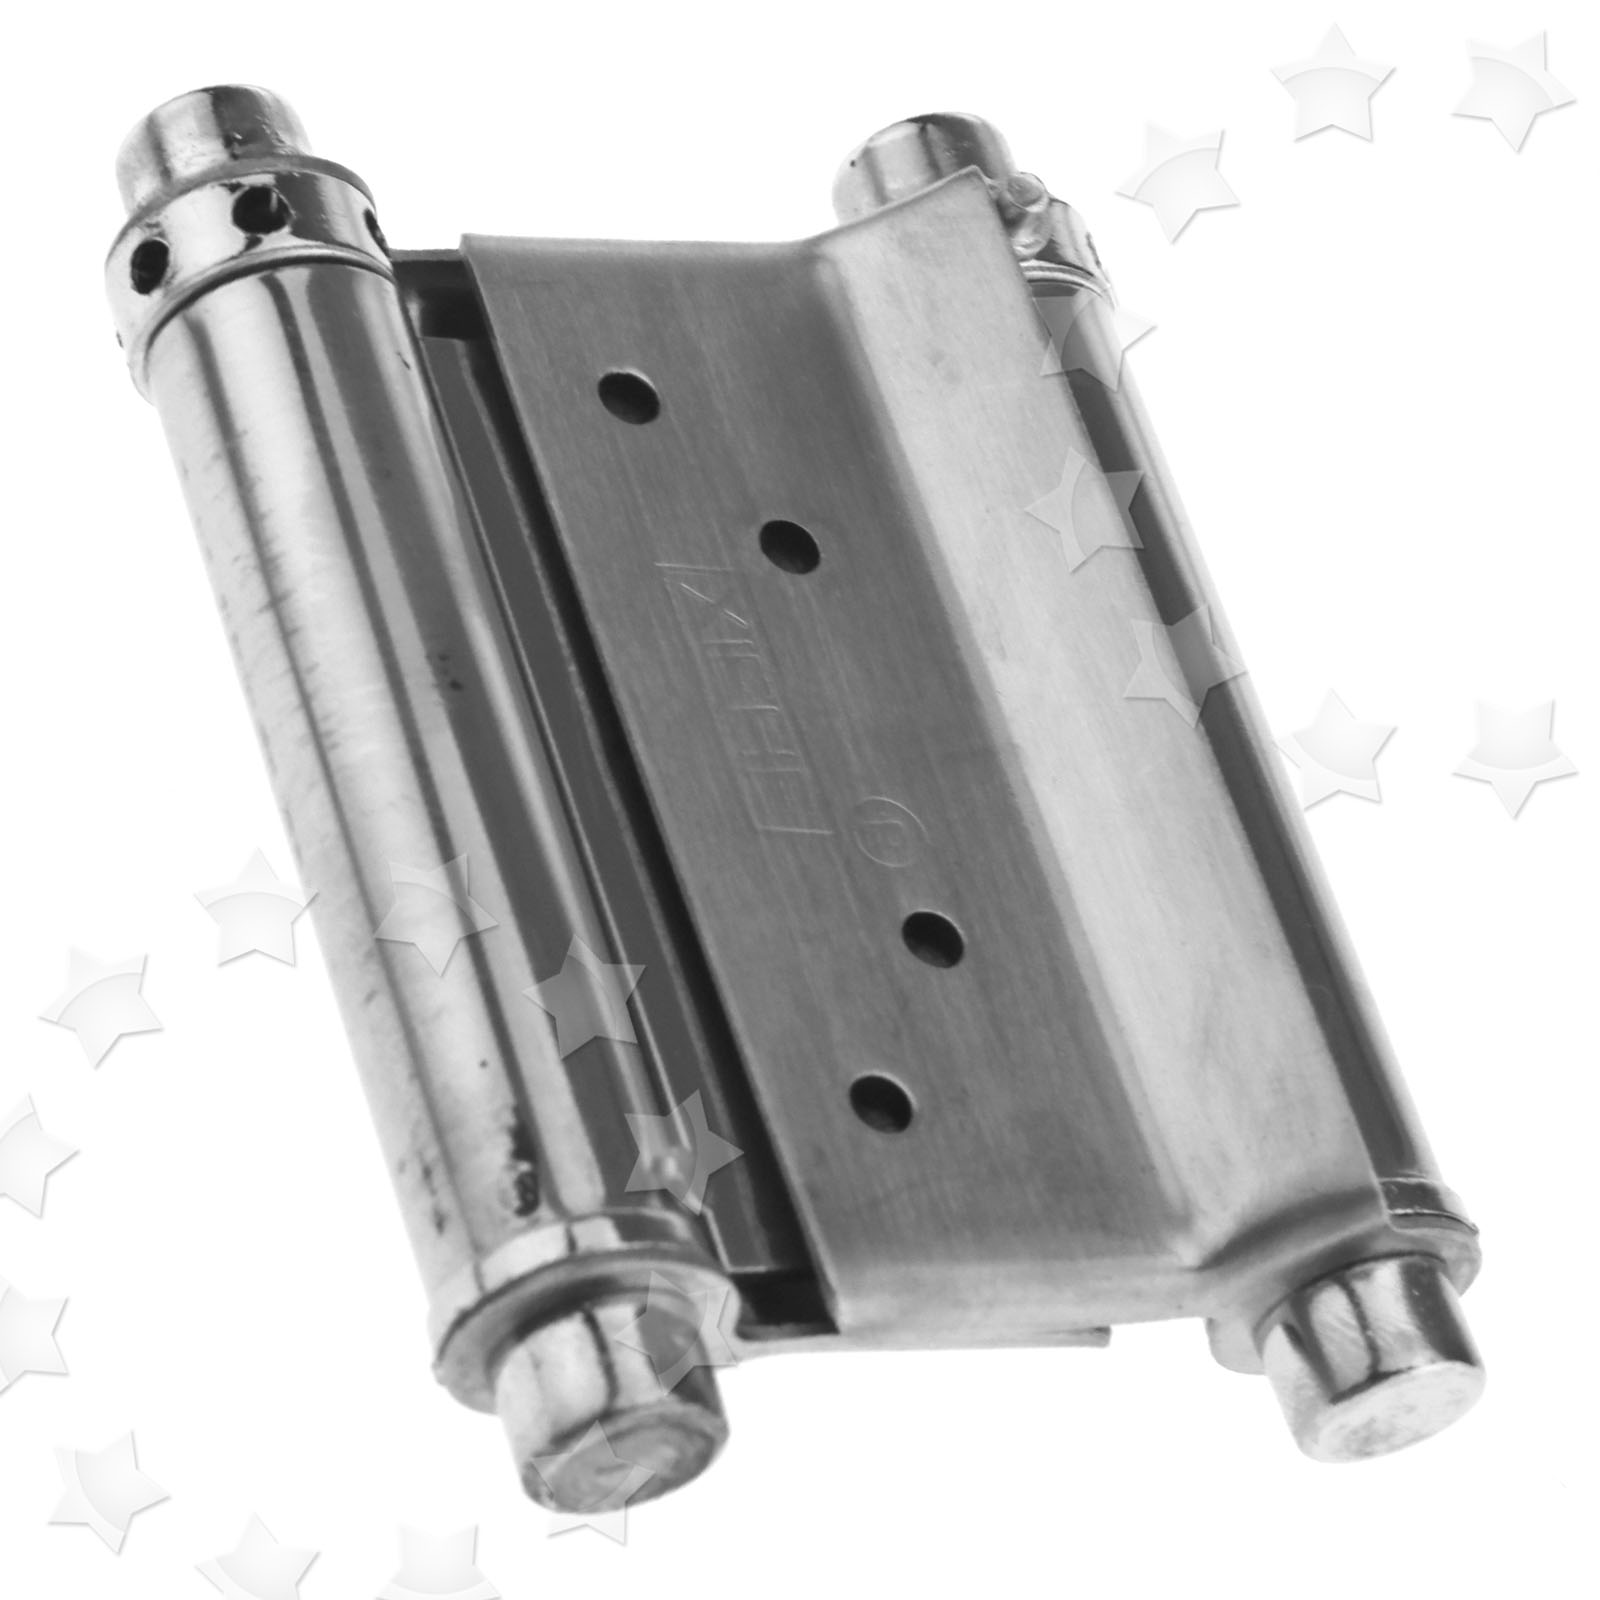 Saloon Door Hinges : Stainless steel cafe saloon door swing self closing double